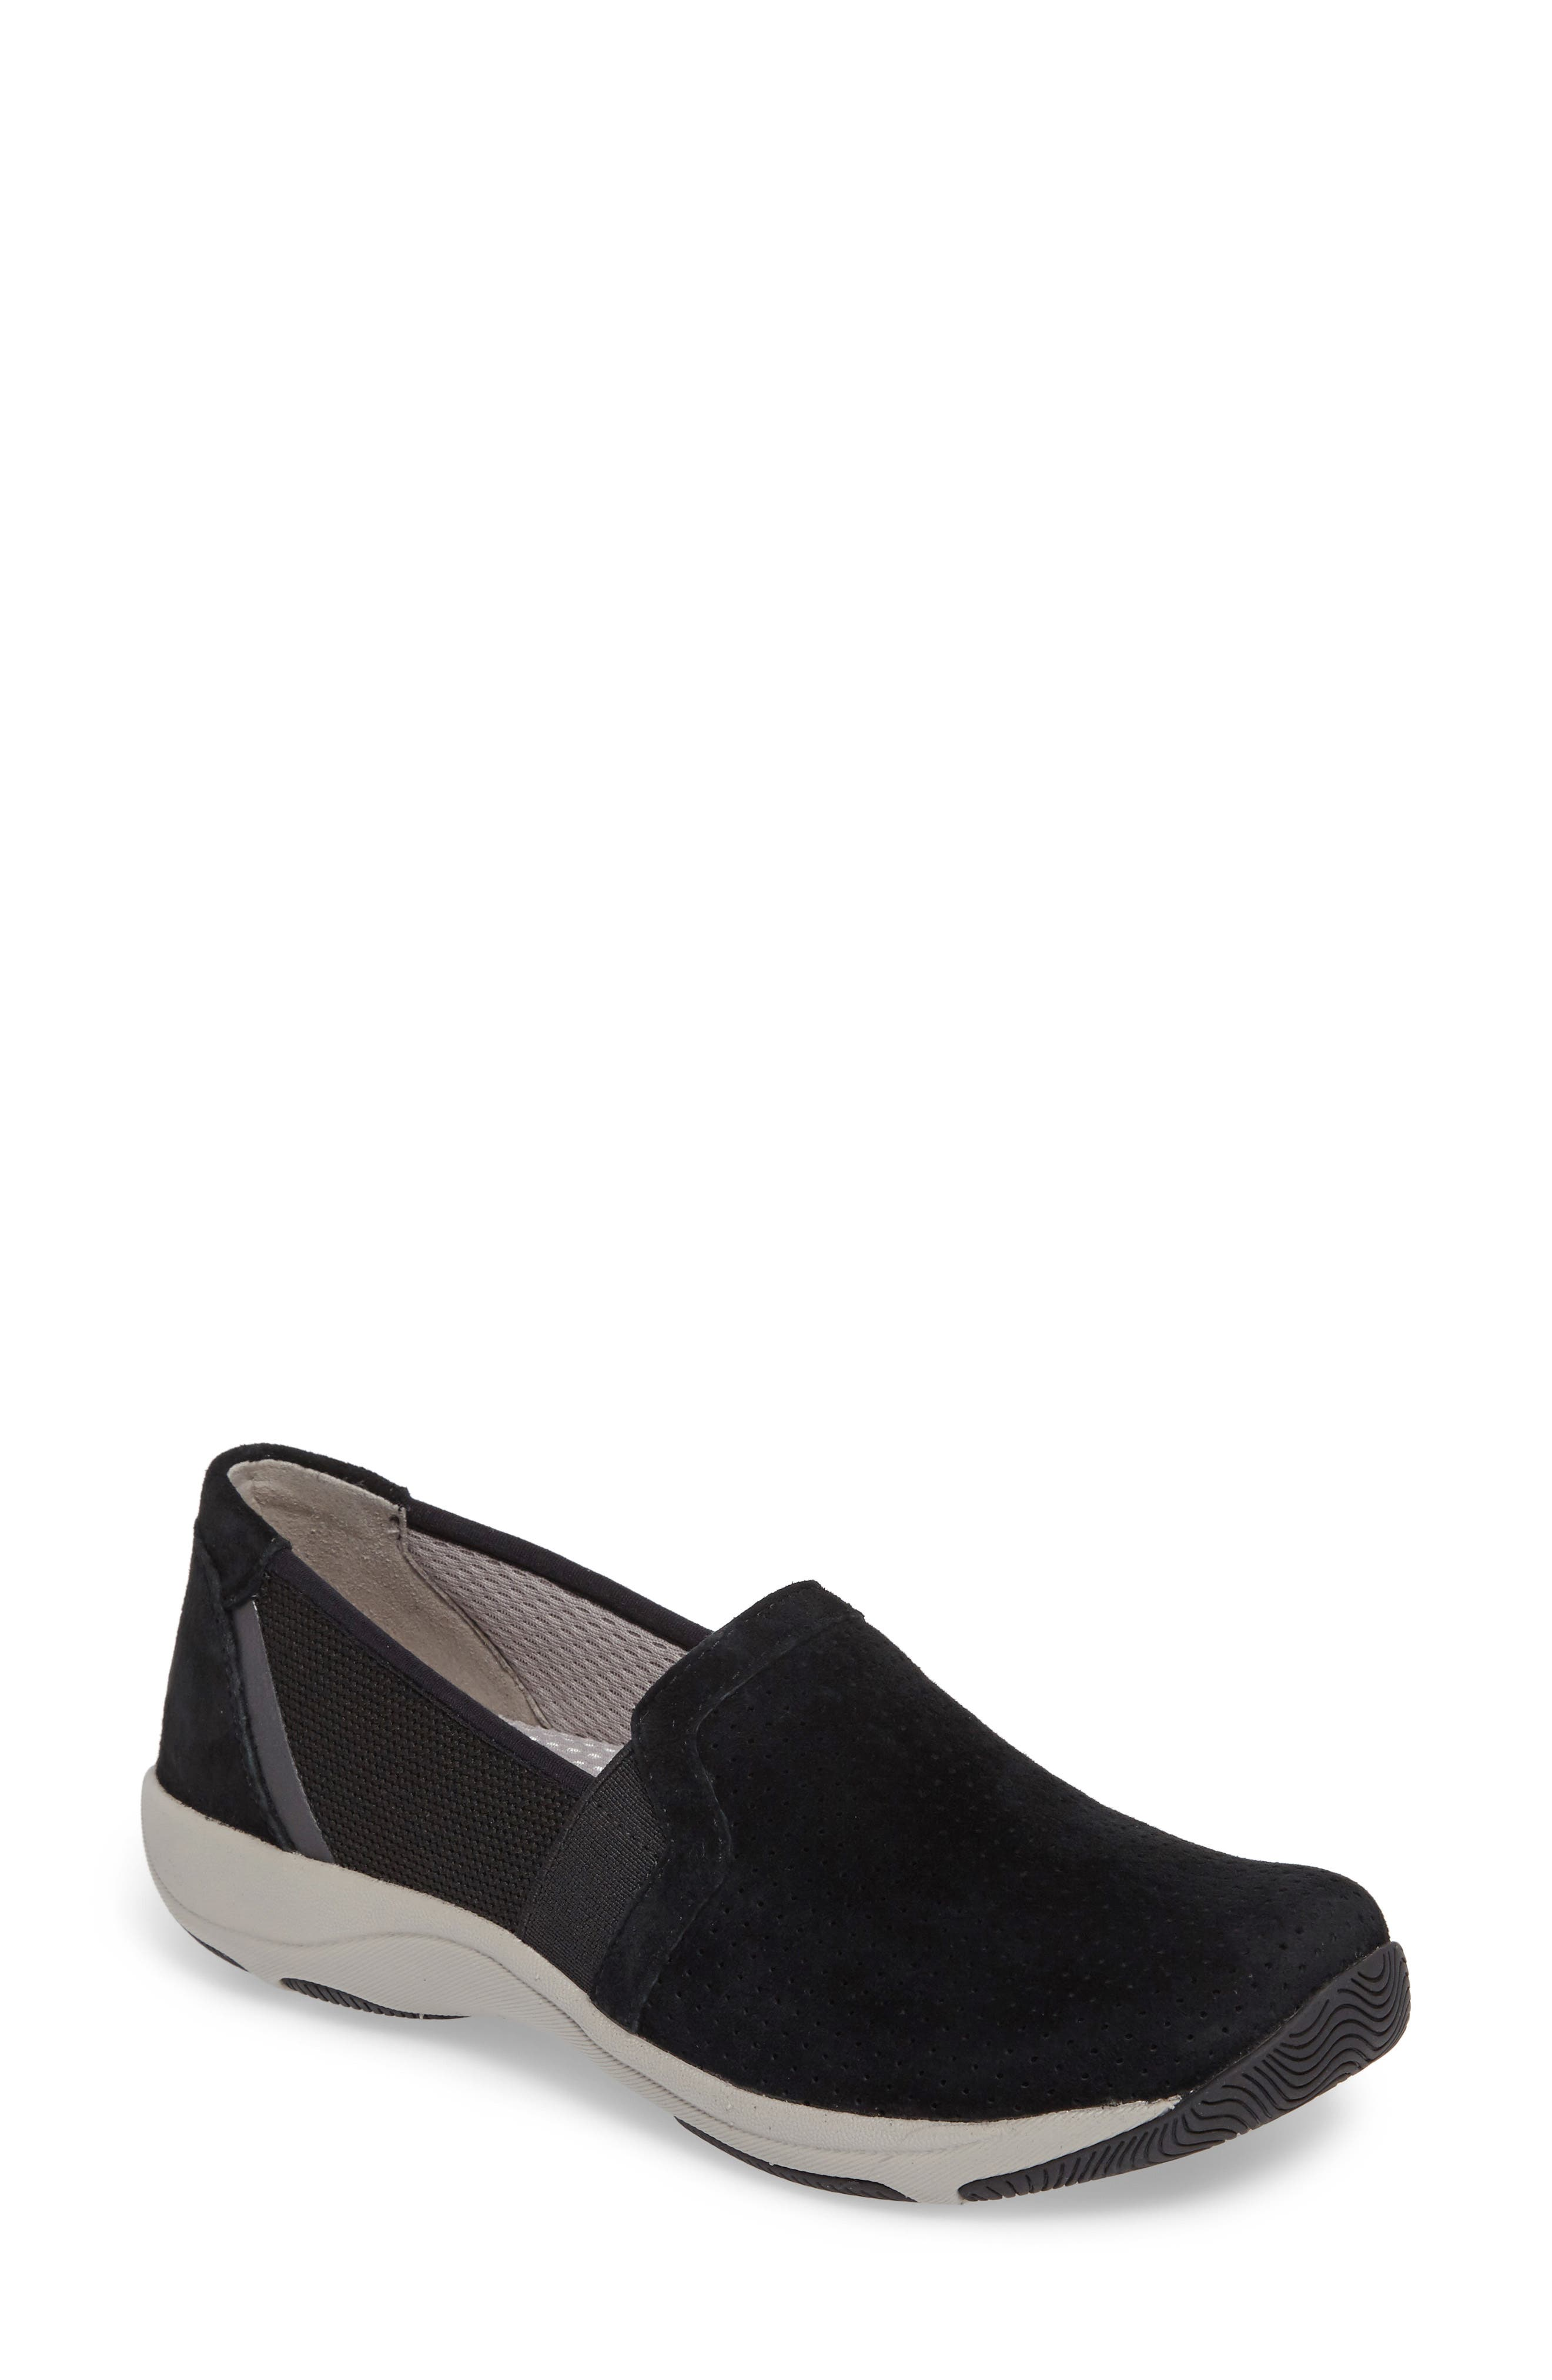 Halifax Collection Halle Slip-On Sneaker,                         Main,                         color,